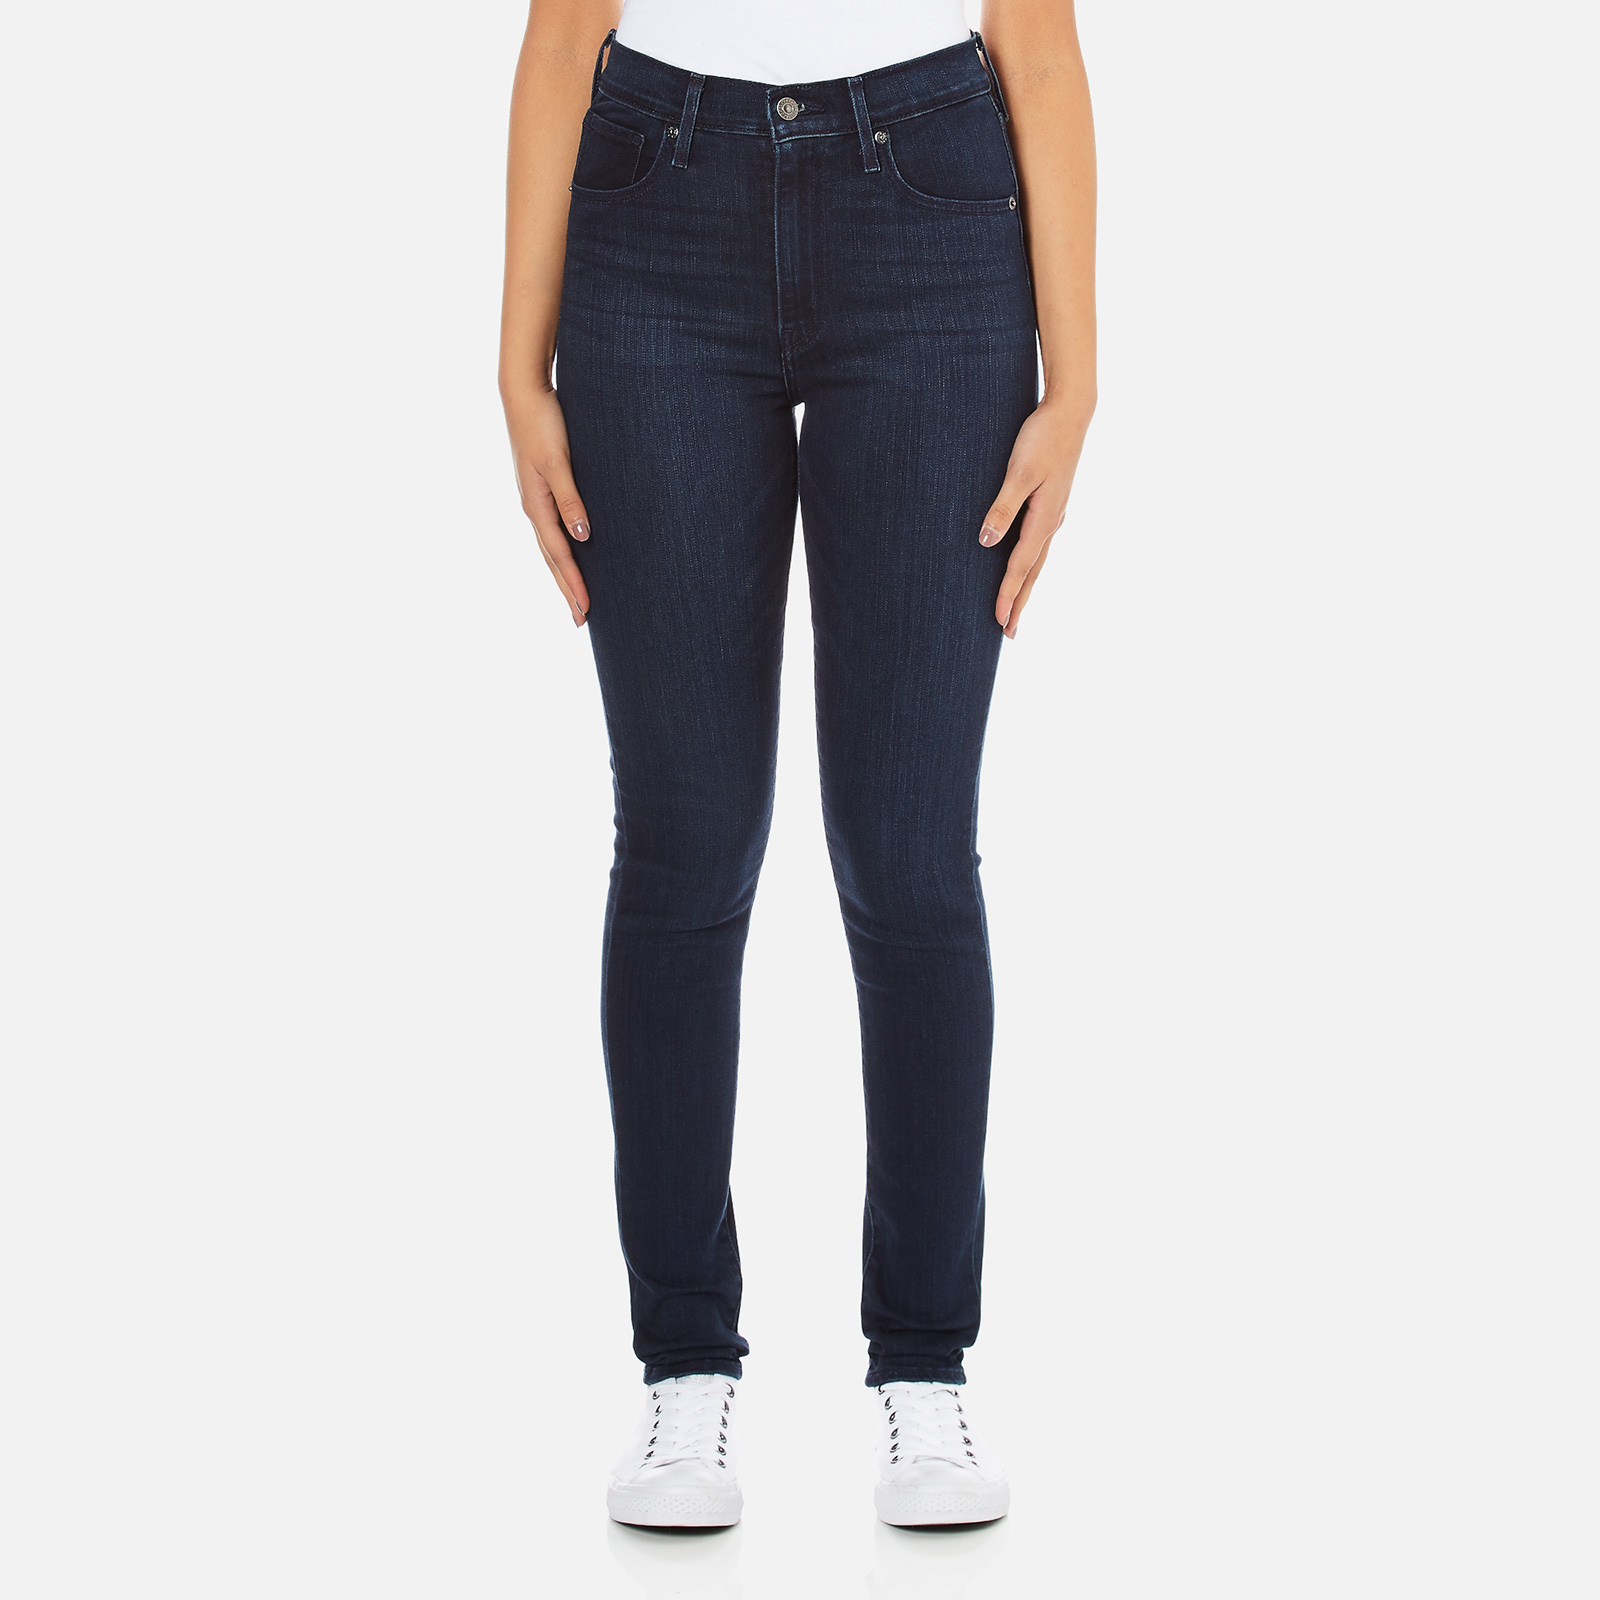 00b24687 Levi's Women's Mile High Super Skinny Fit Jeans - Daydreaming - Free UK  Delivery over £50